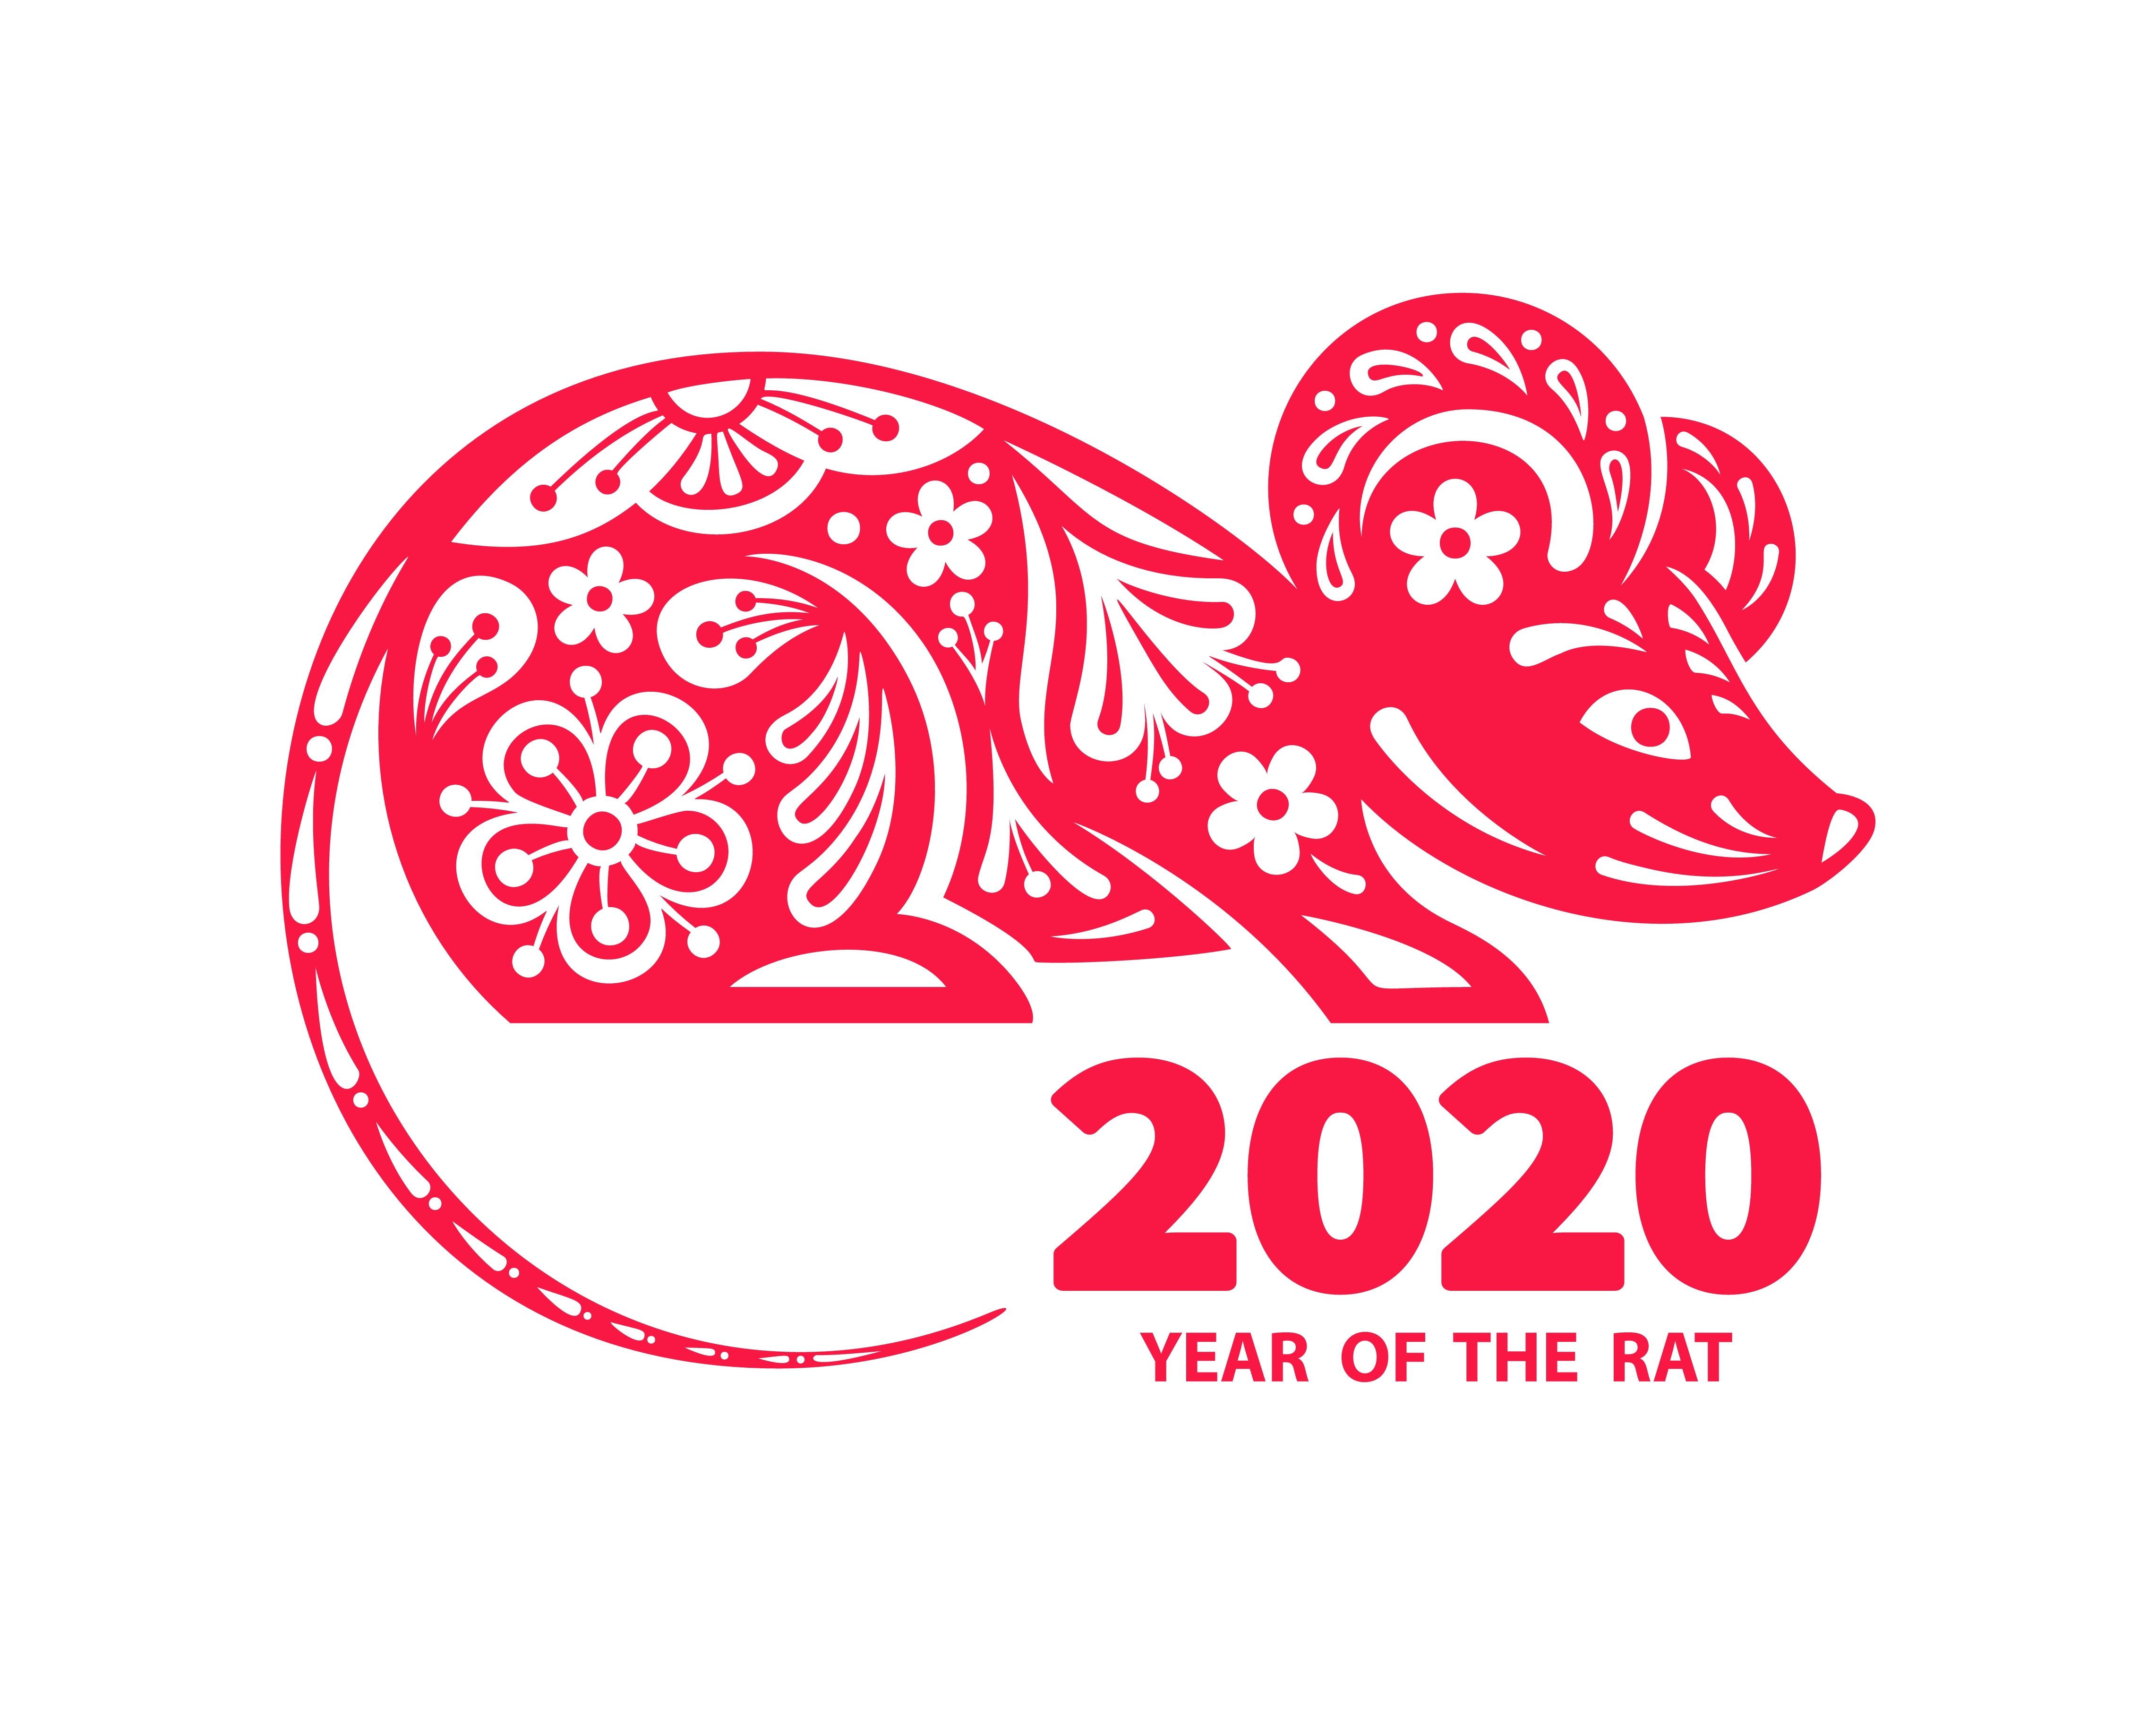 Chinese New Year -- The Year of the Rat!